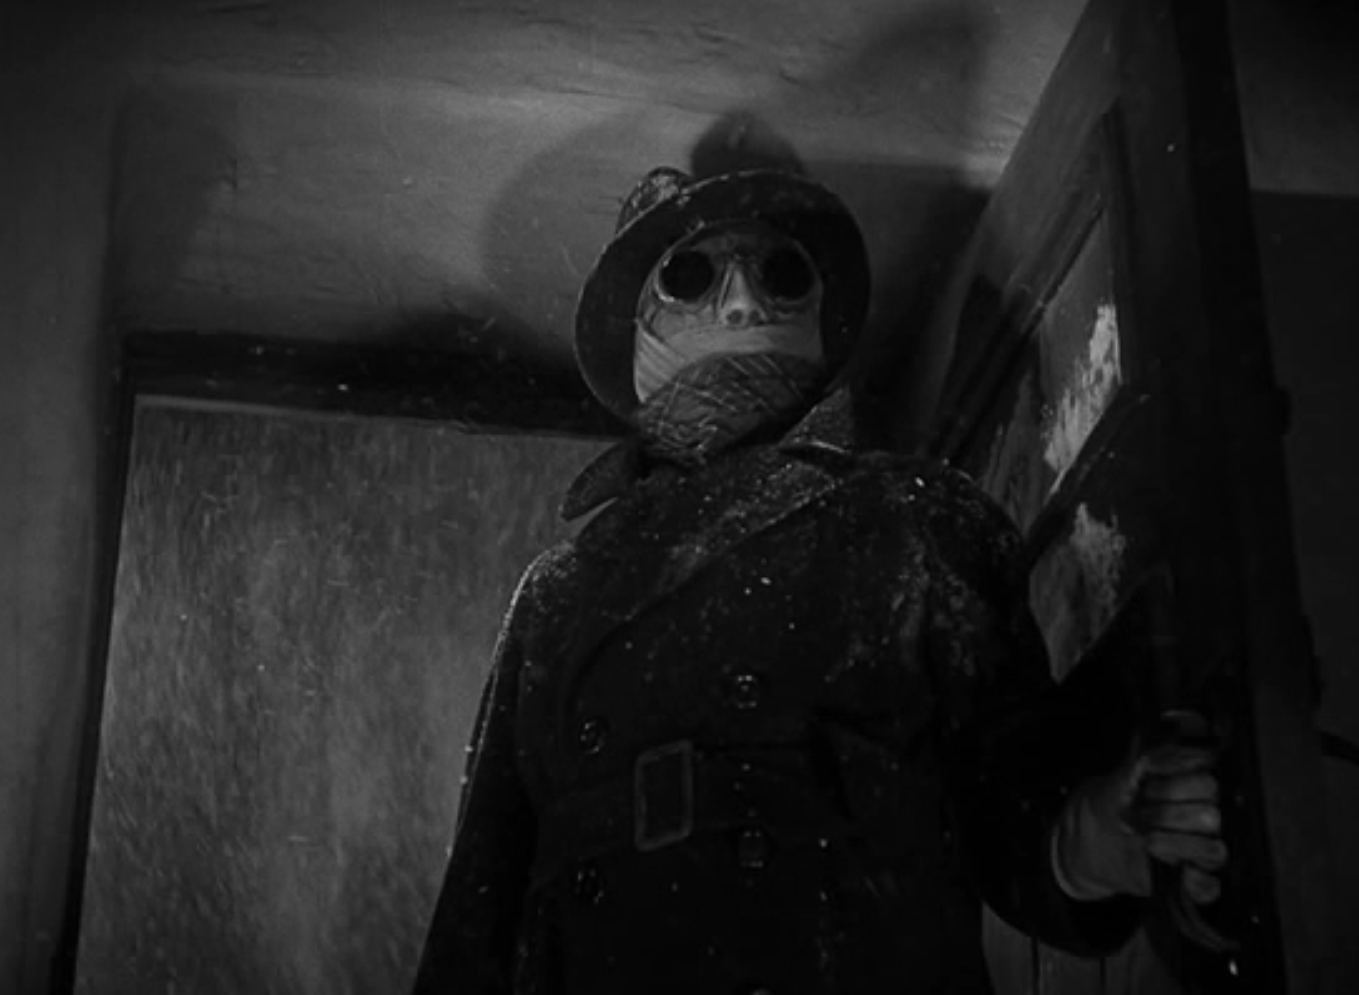 the invisible man essay essay invisible man dissertation invisible  the invisible man review claude rains and gloria invisible man 1933 pre code universal horror